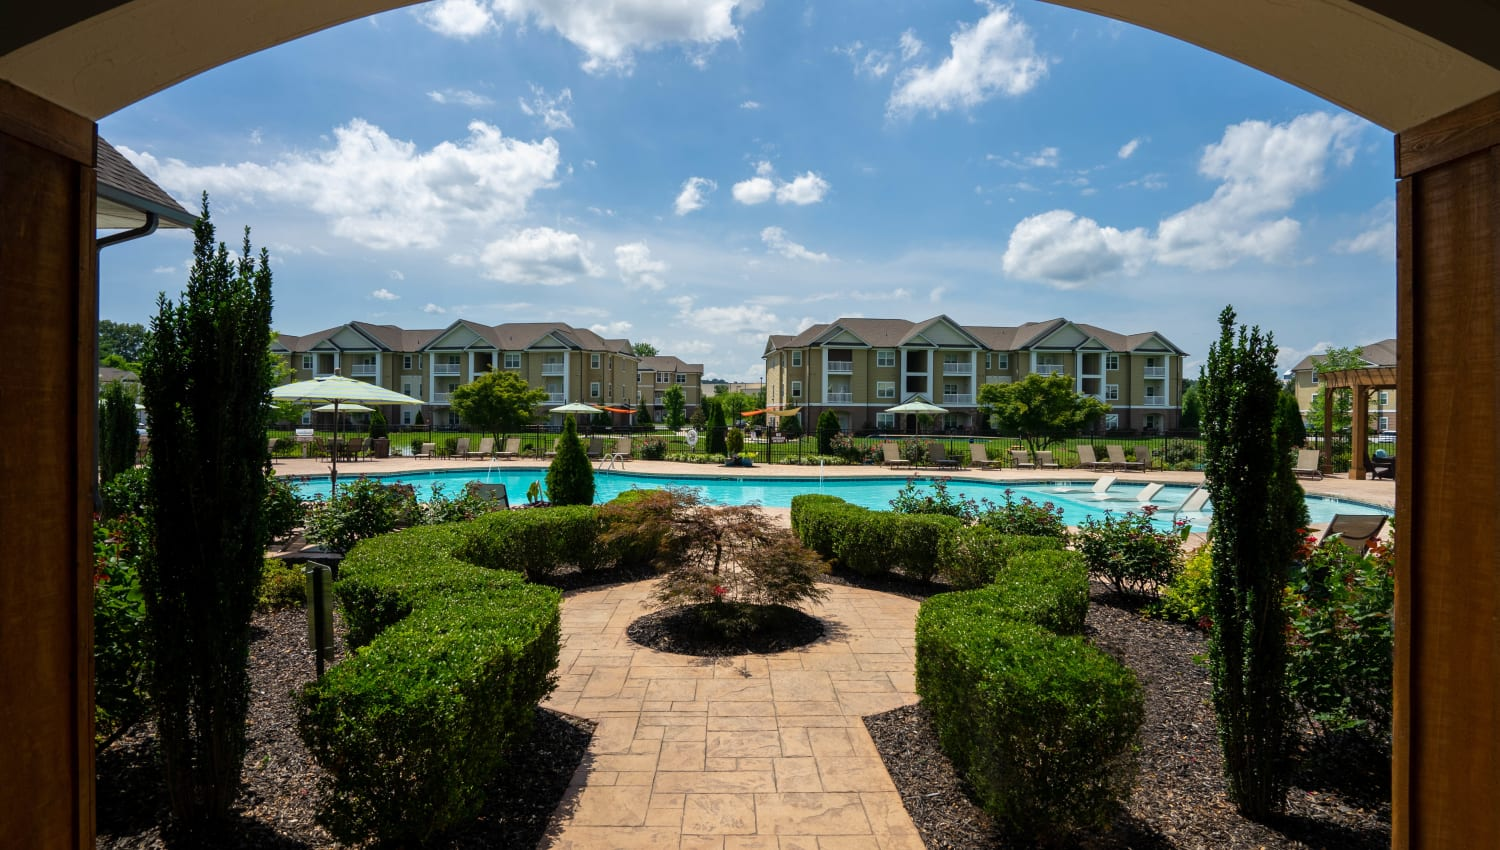 Professionally groomed shrubbery at the entrance to the pool area at Legends at White Oak in Ooltewah, Tennessee